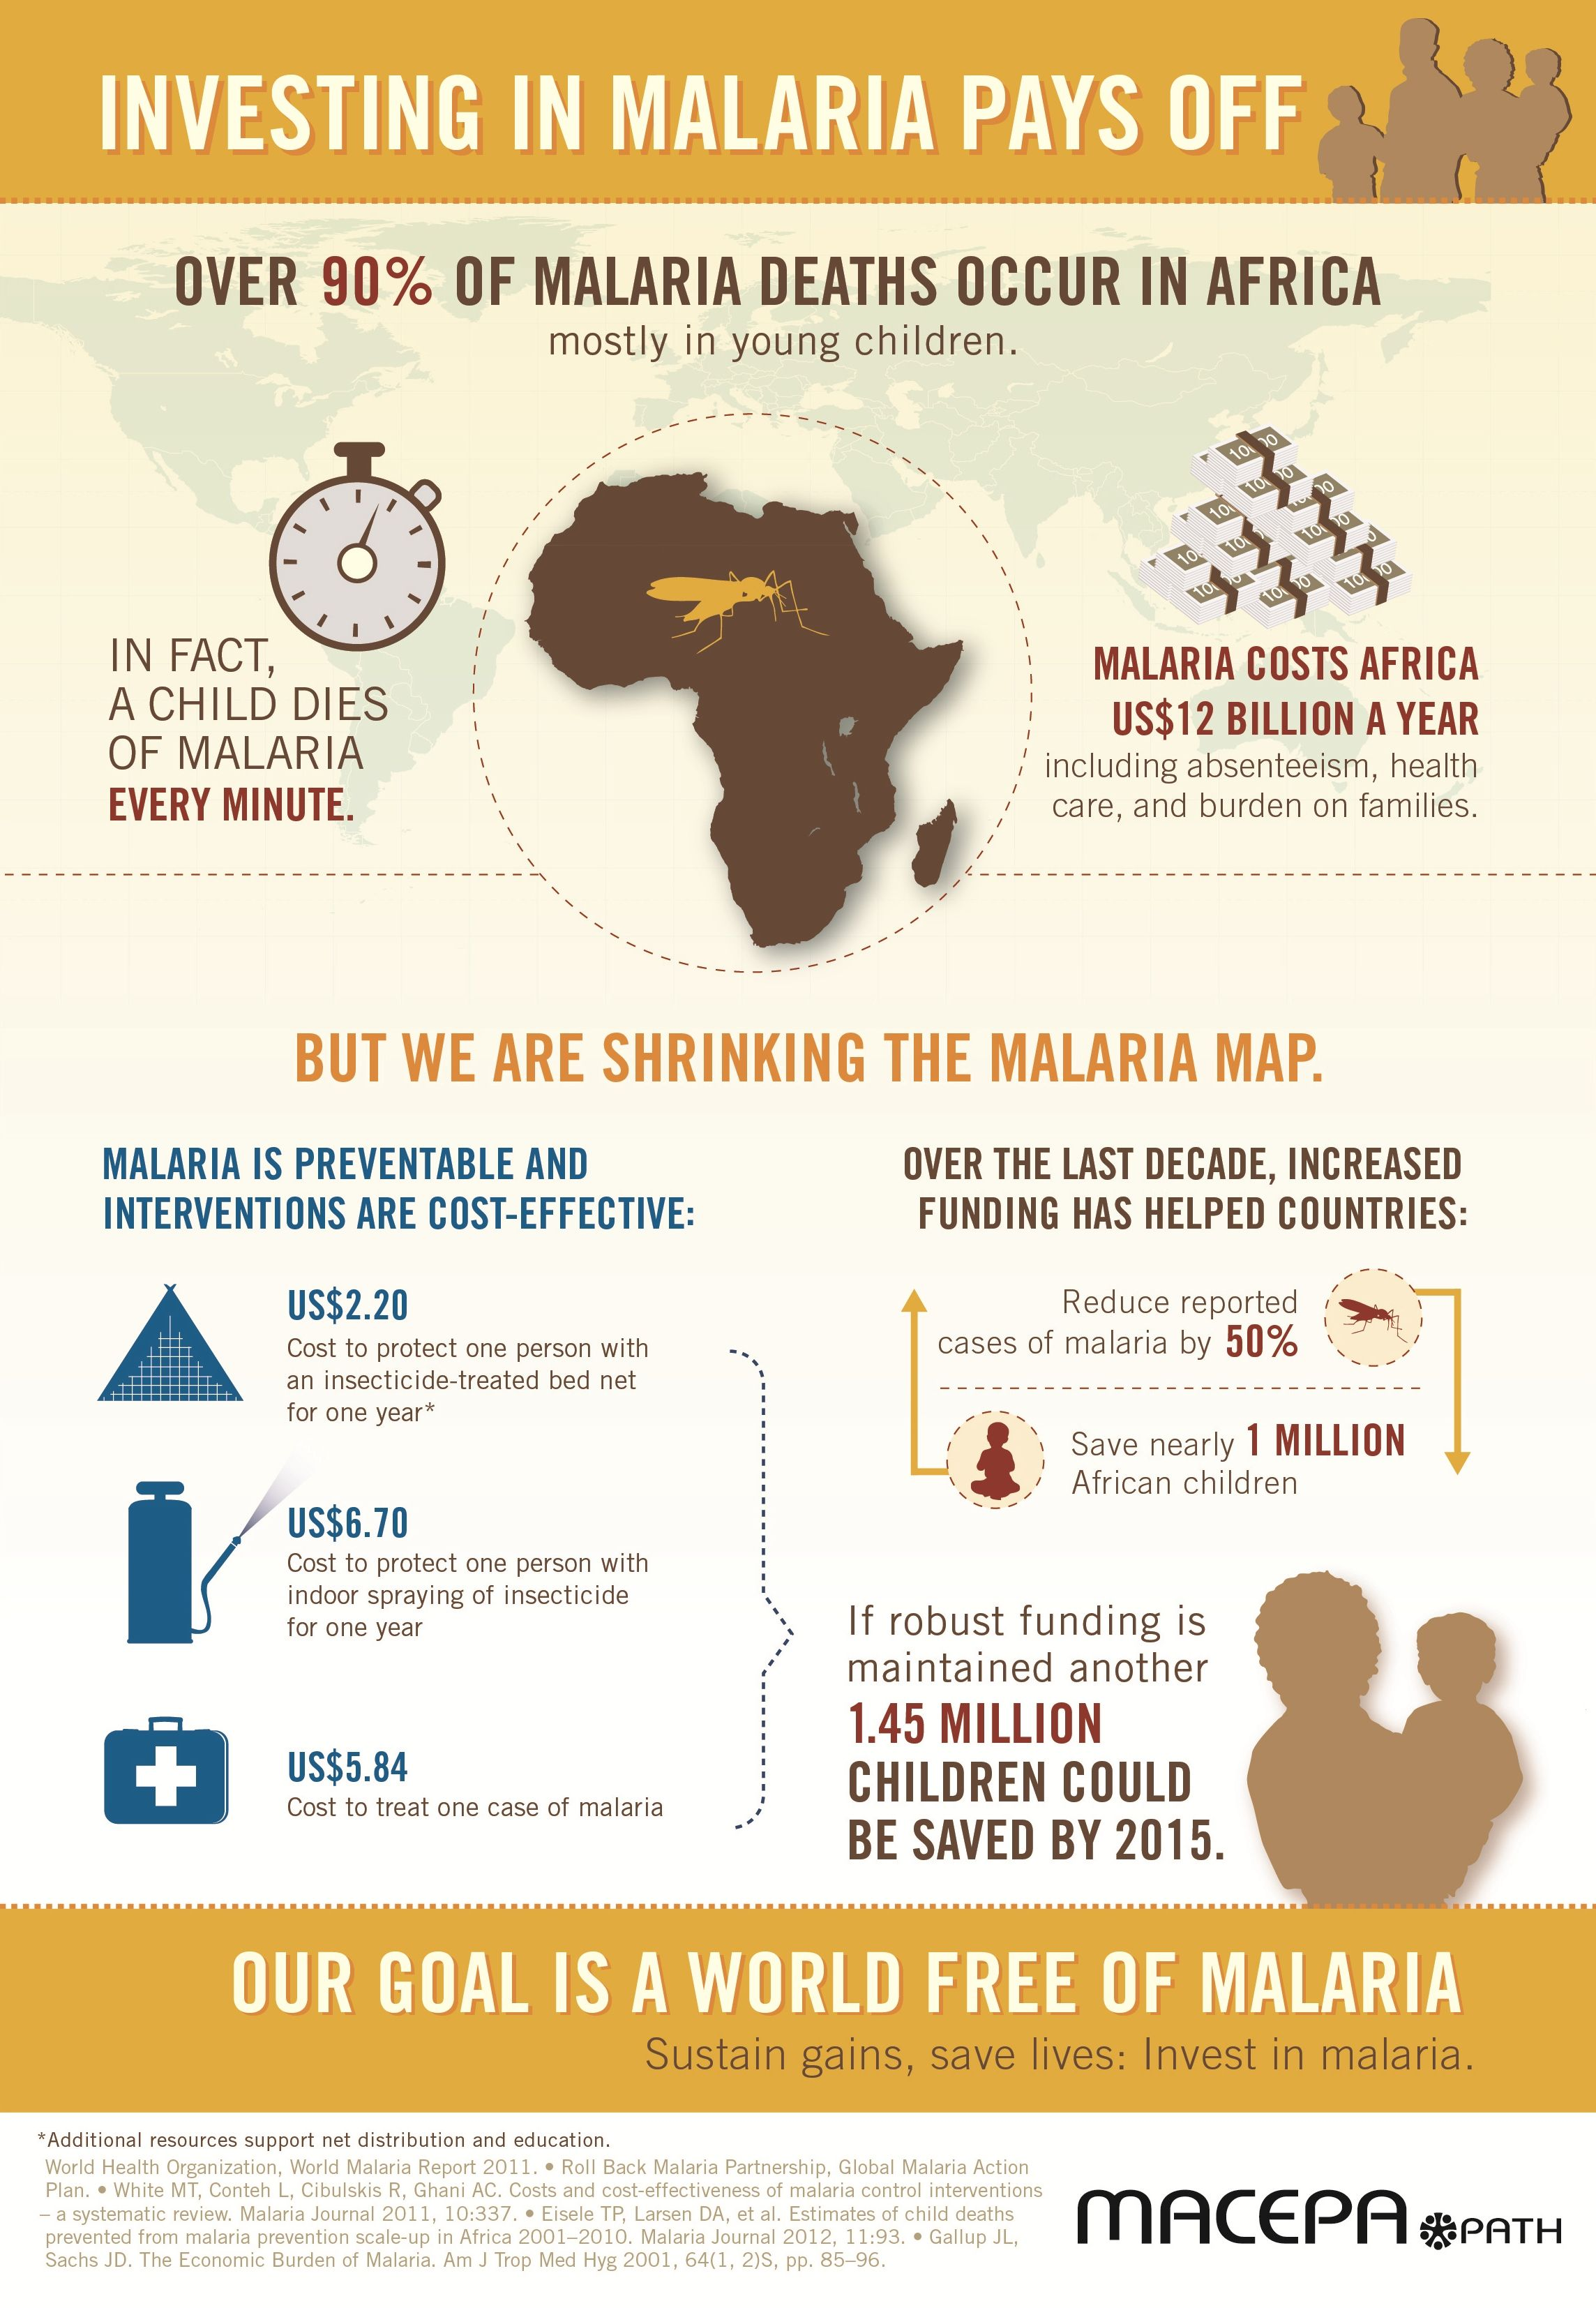 Awesome World Malaria Day infographic from MACEPA (Malaria